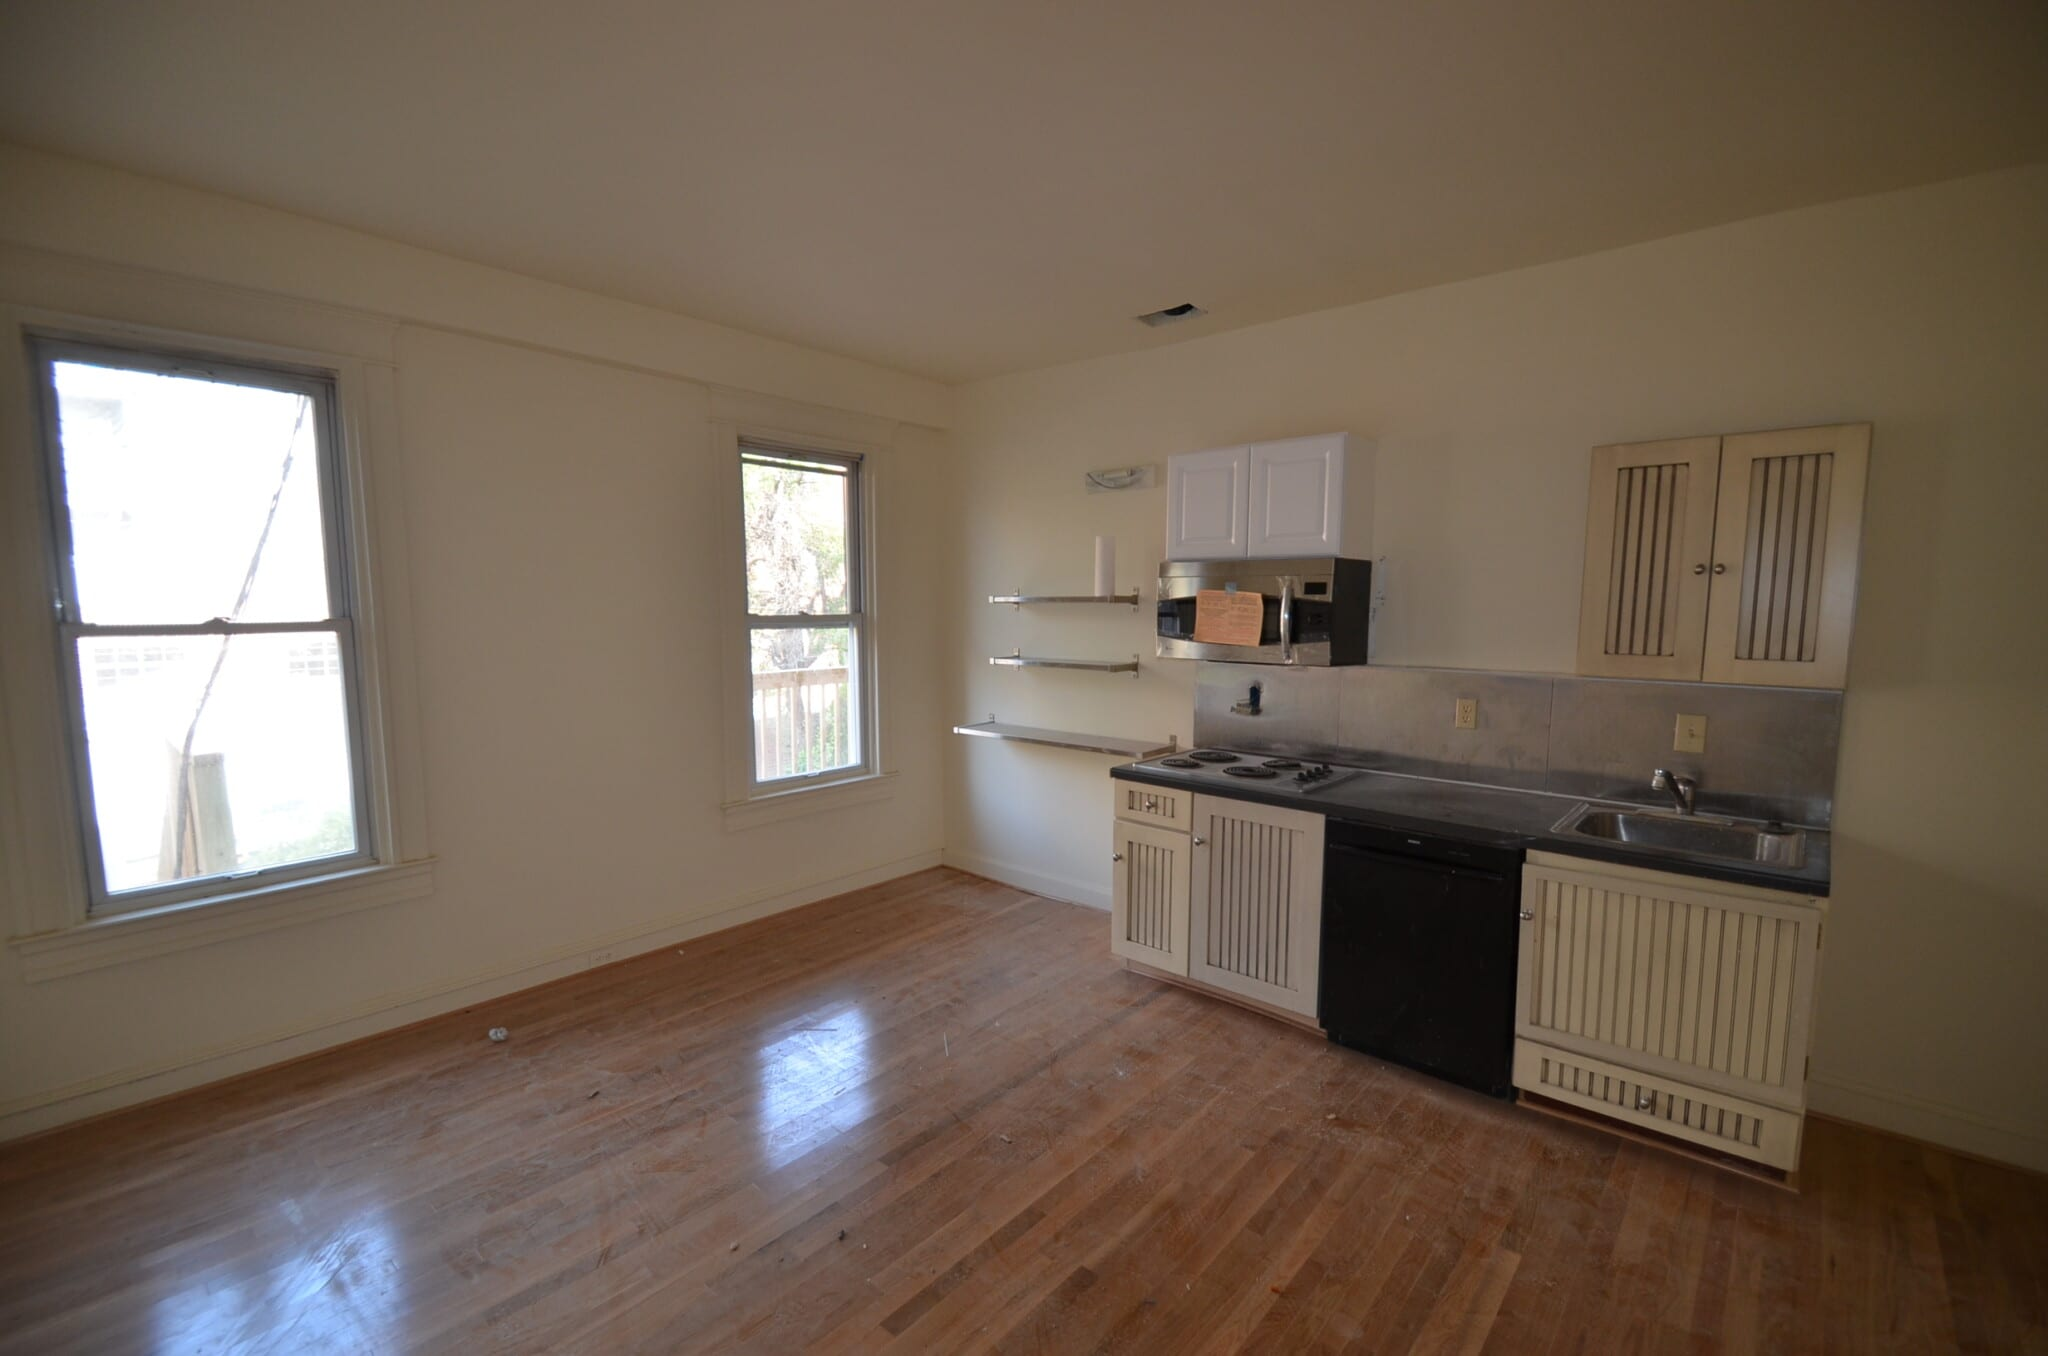 3210 N Calvert ~ 1 Bedroom Only 1/2 Block from Chipolte and Charles Village Shops; 2 Blocks to JHU